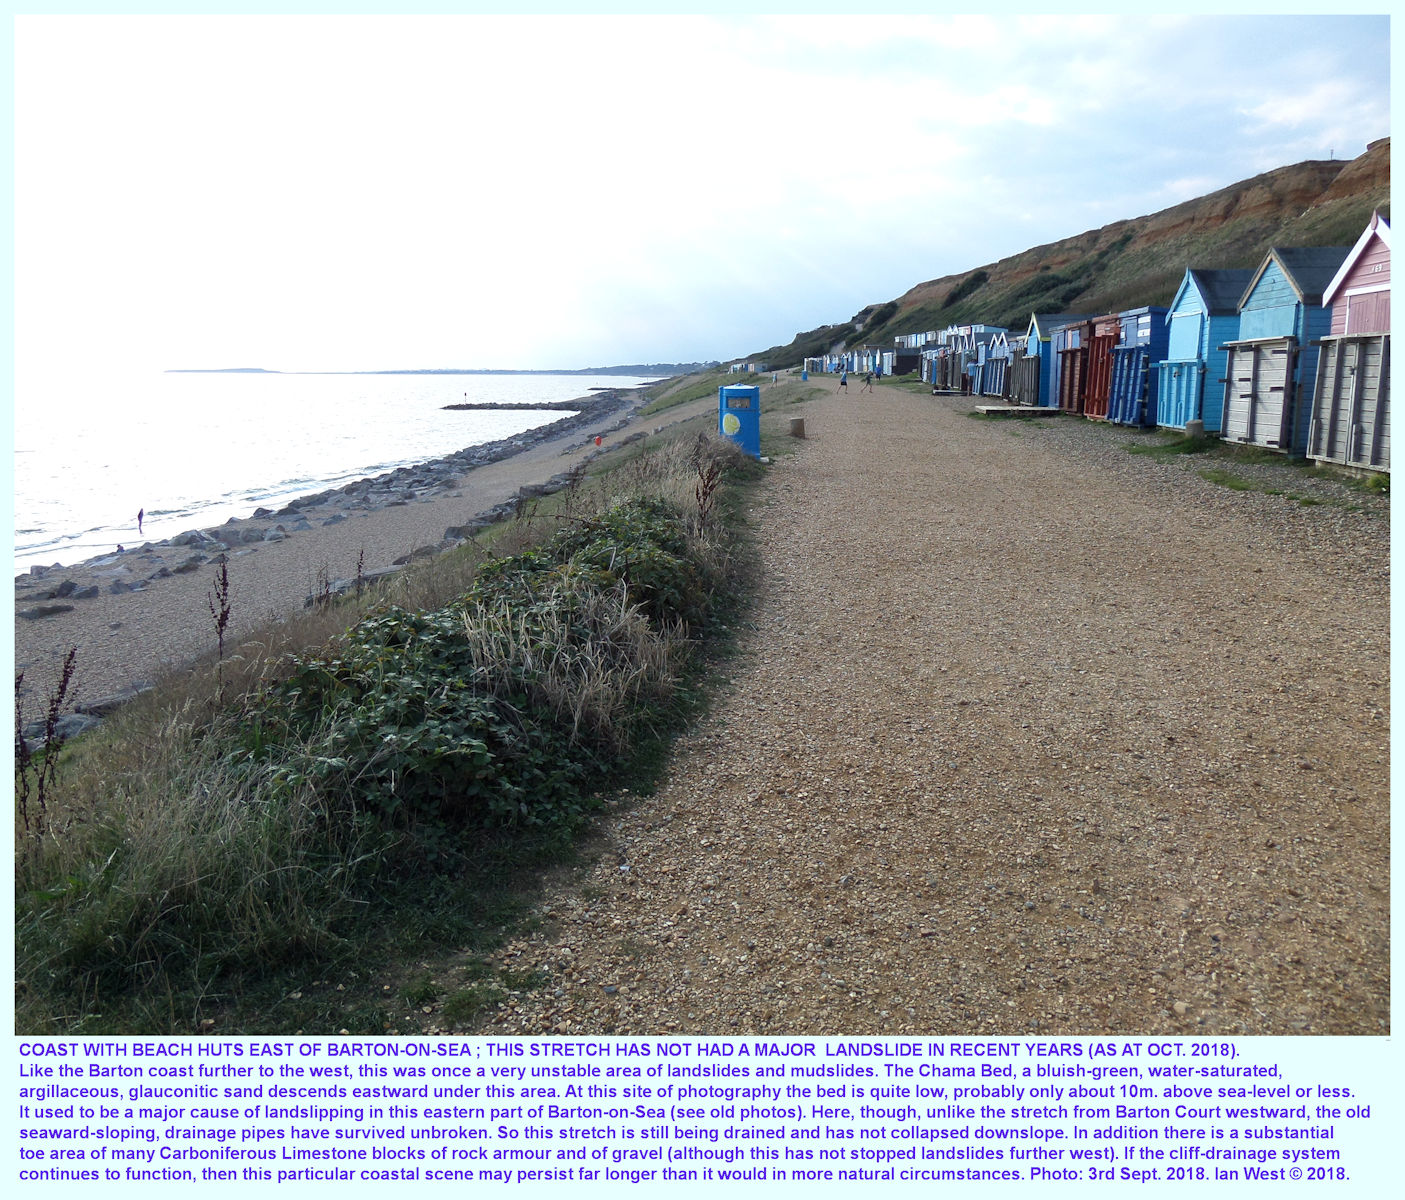 A row of beach huts east of the Barton Court area on an apparently stable, modified cliff area that has been successfully drained since about 1975 and is seen here in September 2018